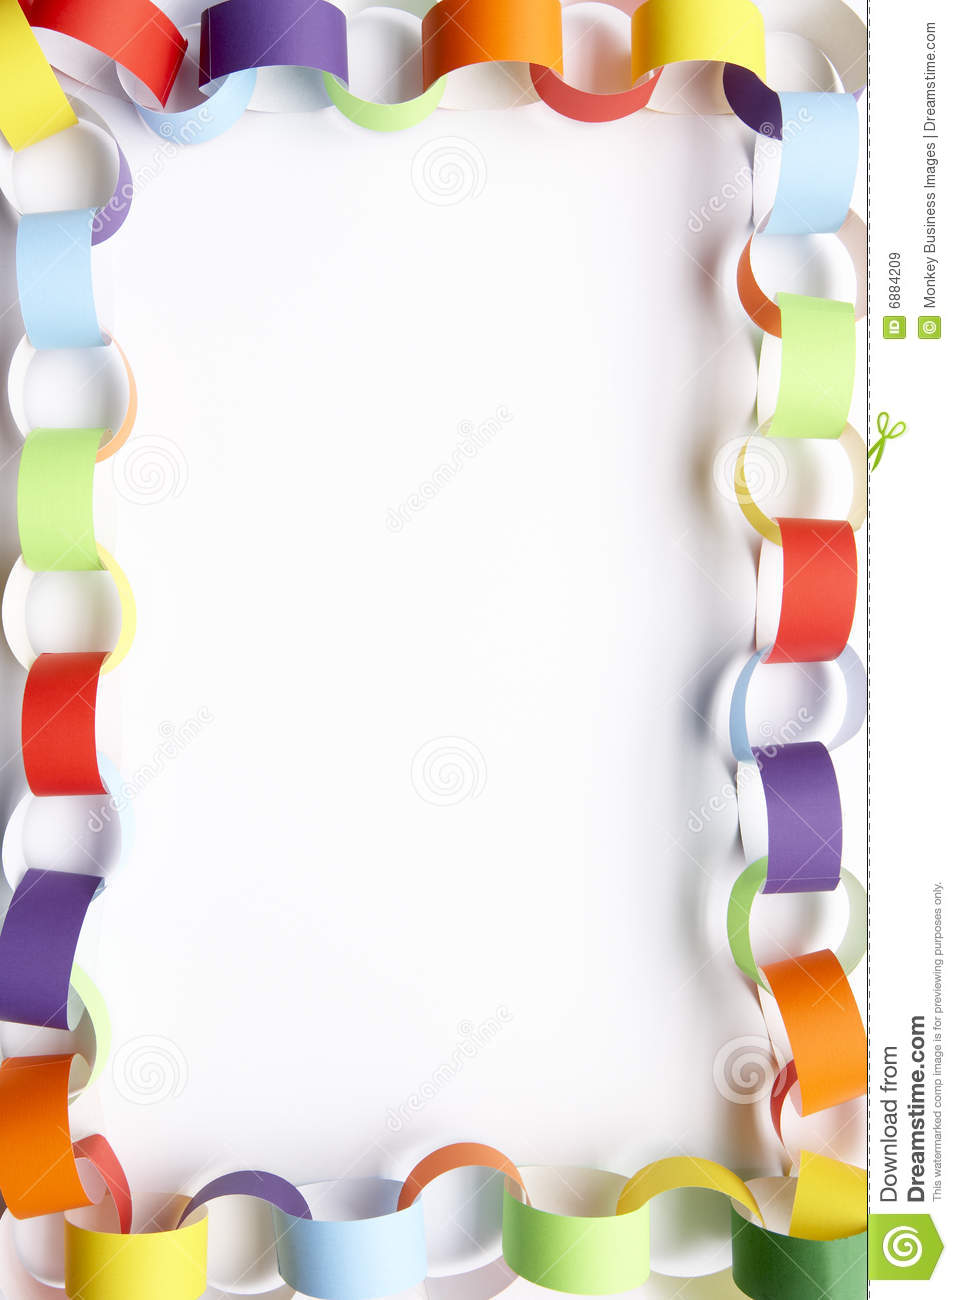 Border Made From Paper Chains Royalty Free Stock Images ...